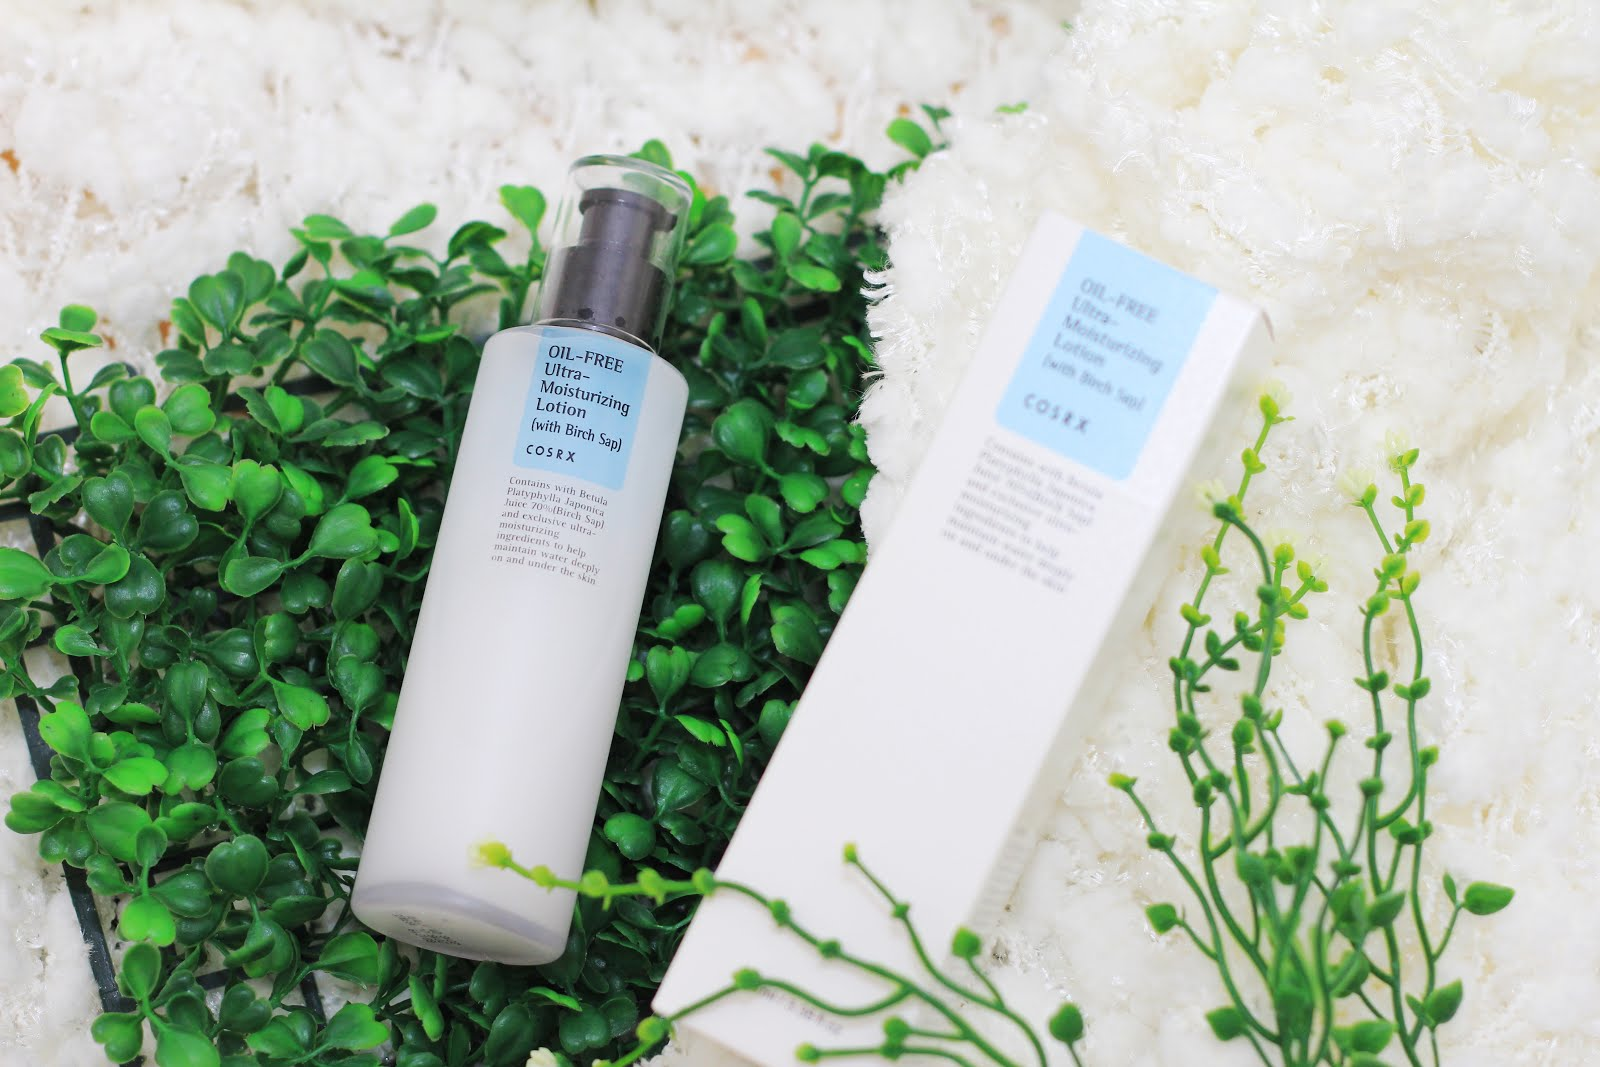 Cosrx Oil-Free Ultra-Moisturizing Lotion Review - Cindy's Planet